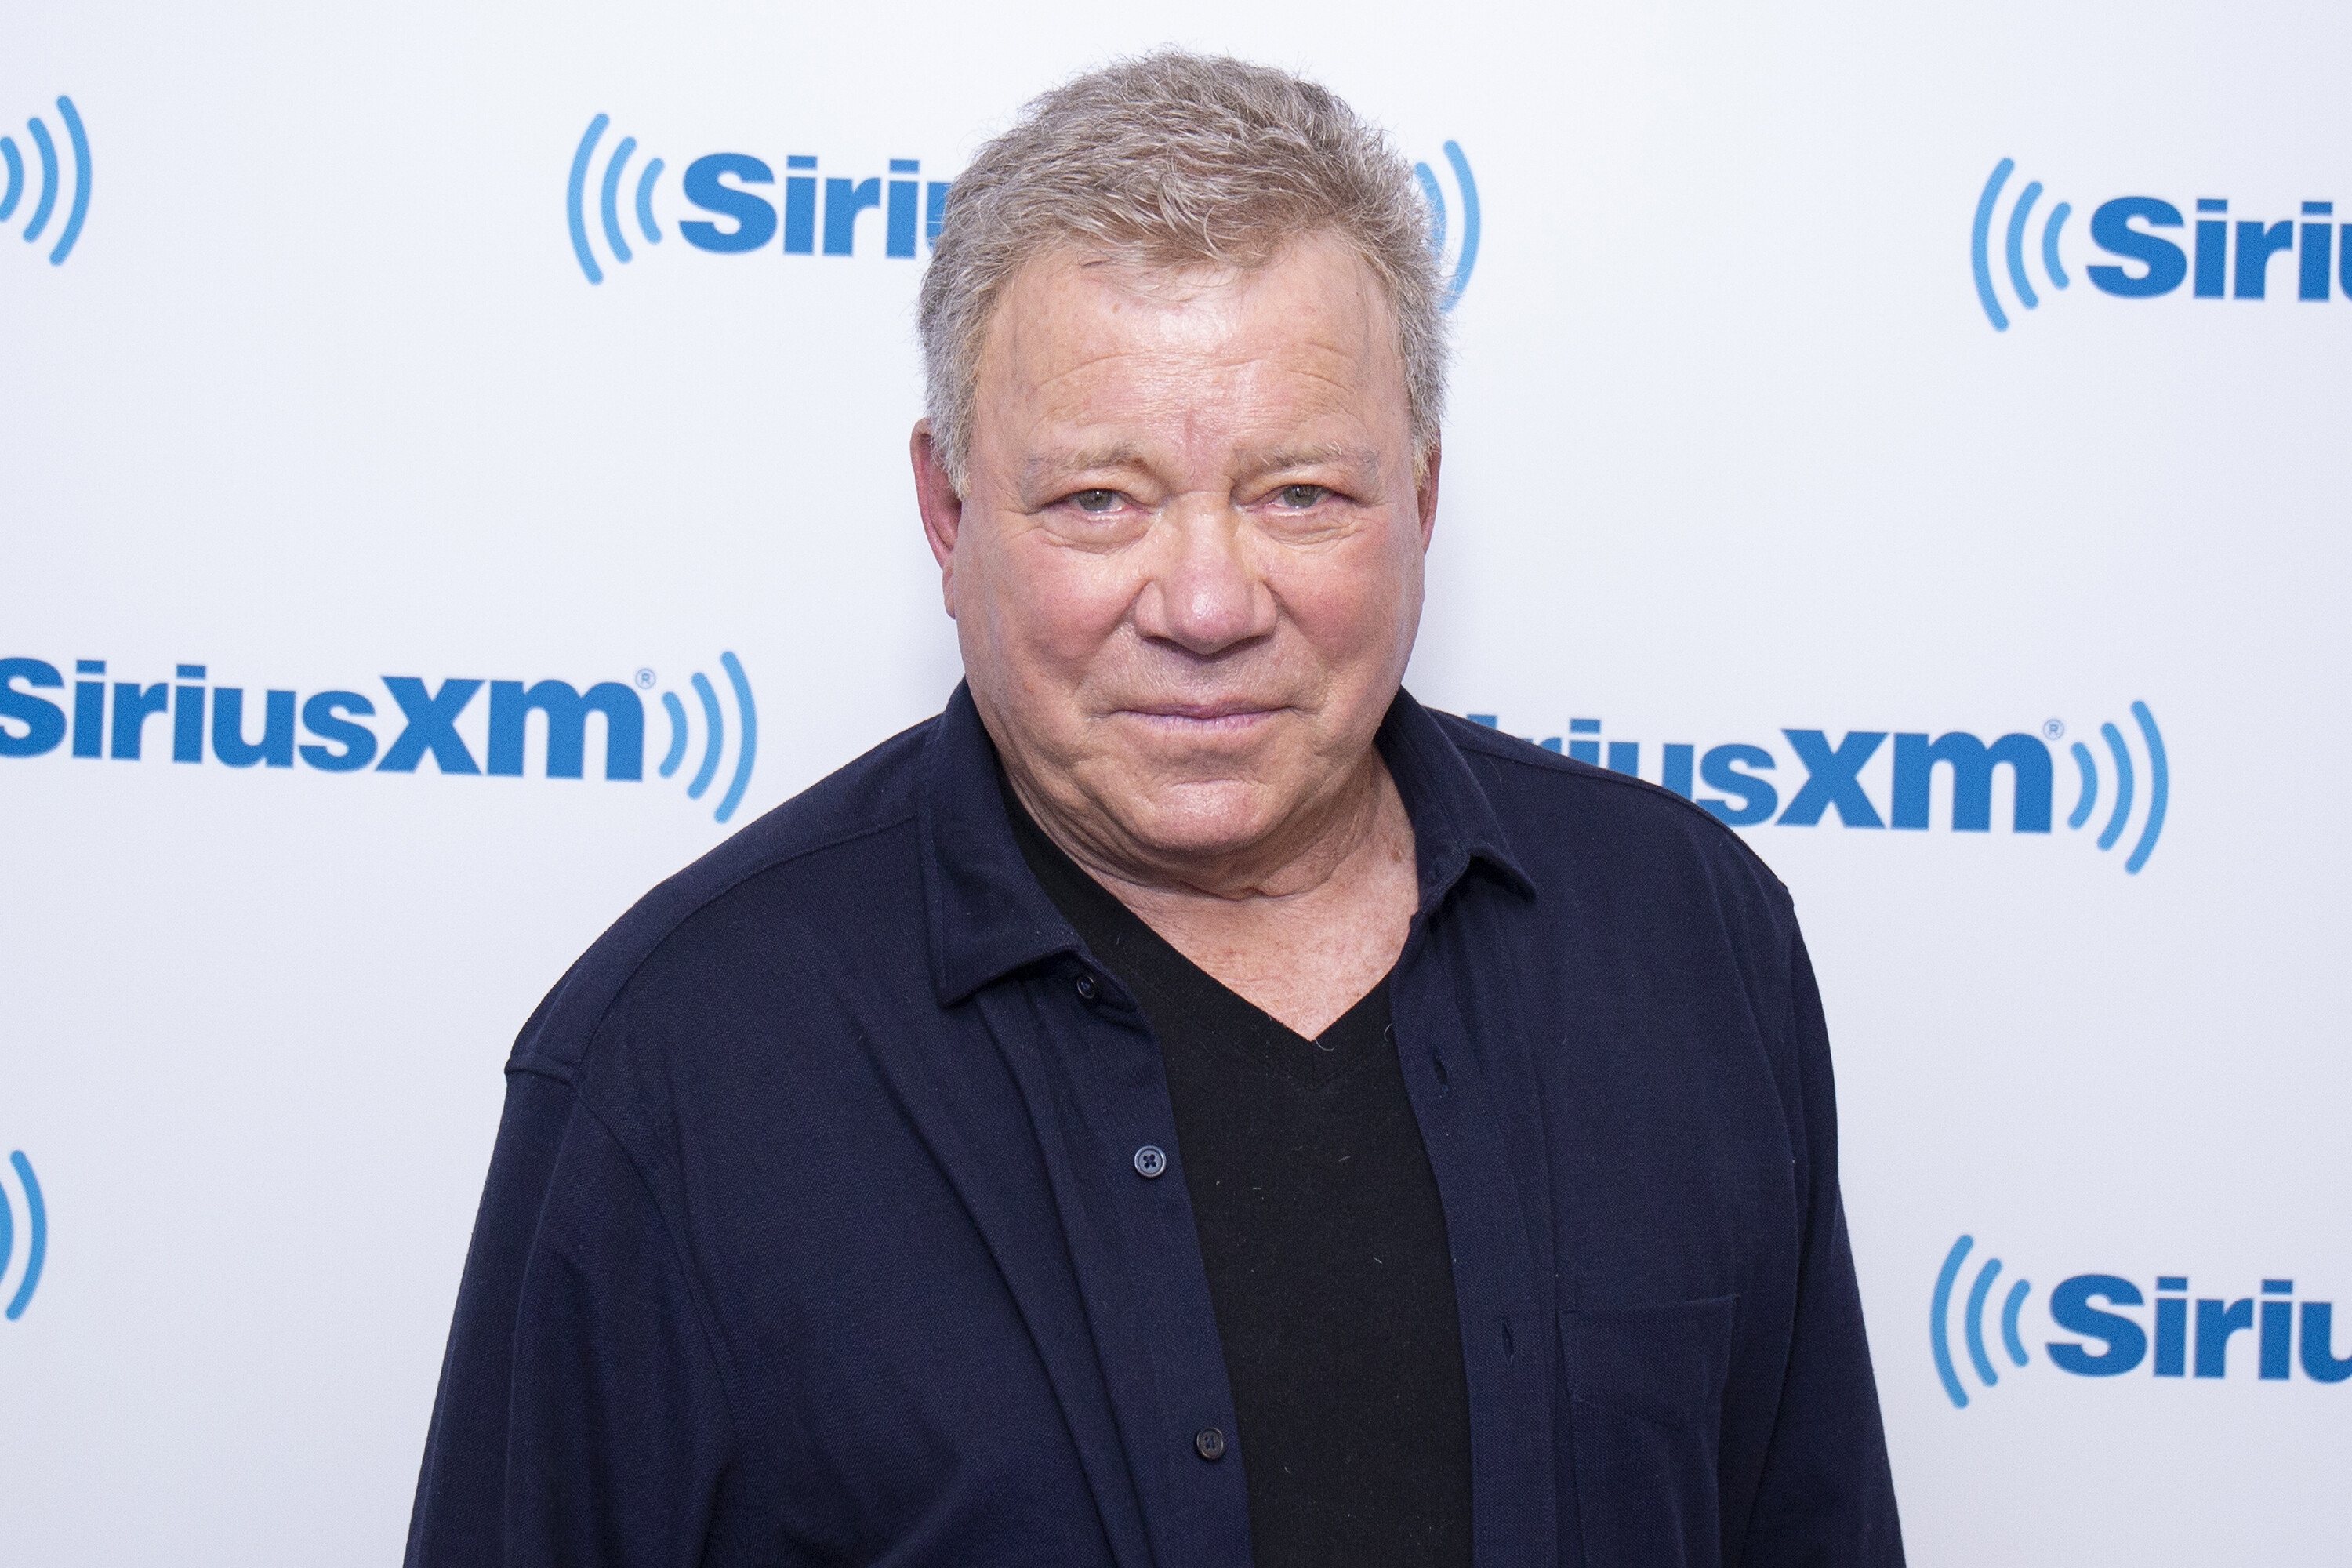 William Shatner, 90, is headed to space with Audrey Powers on Jeff Bezos' Blue Origin mission